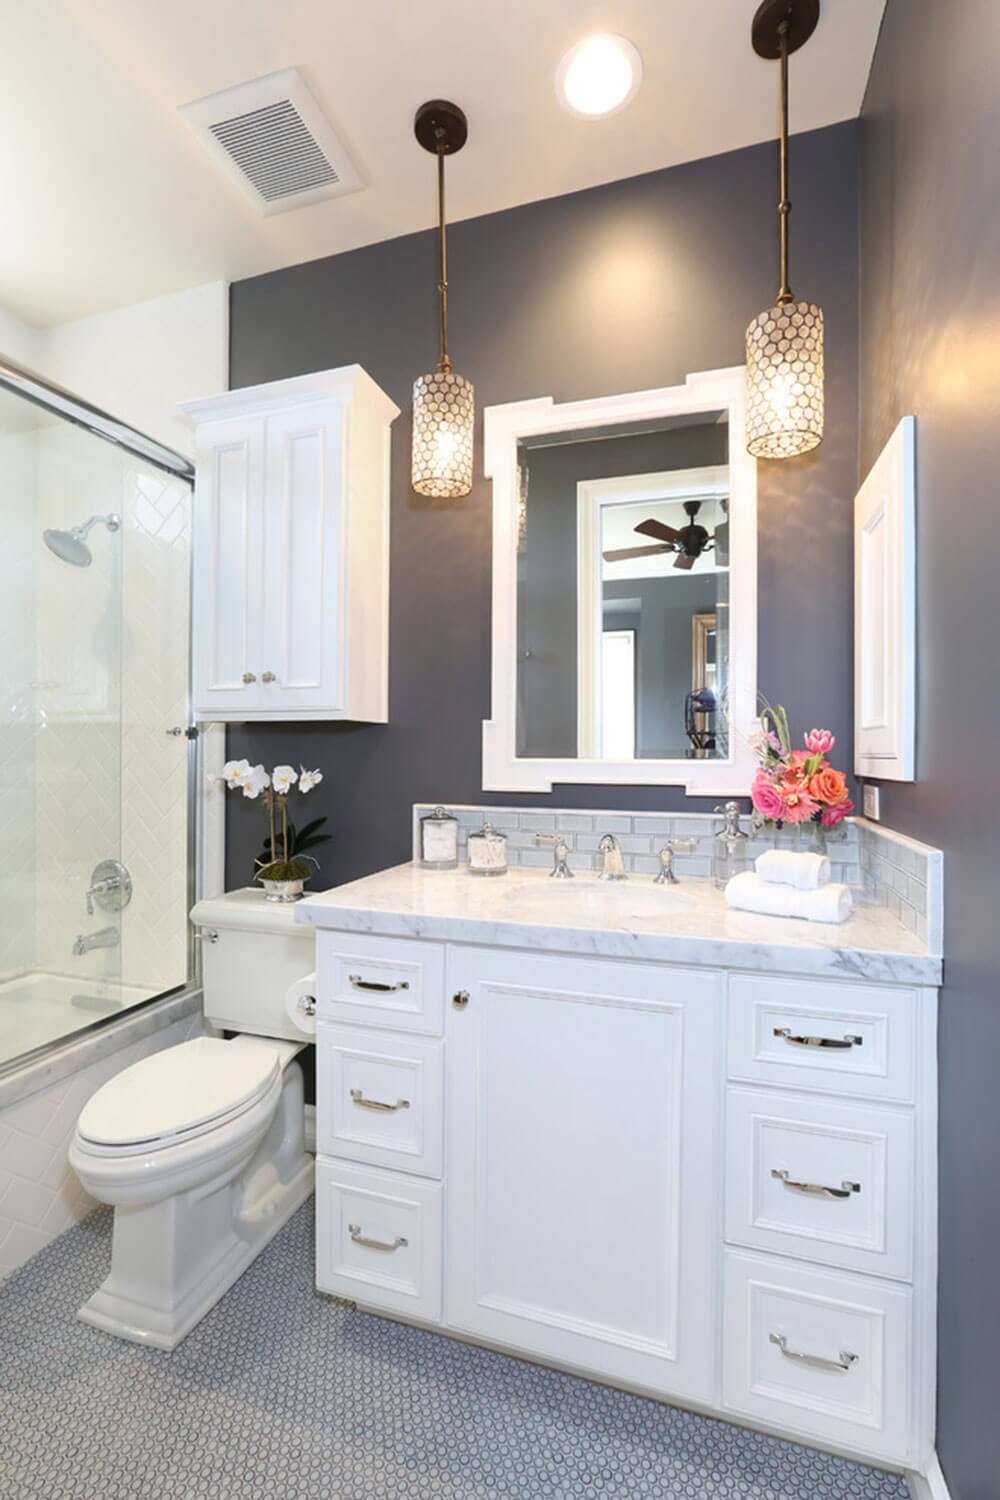 32 Best Small Bathroom Design Ideas and Decorations for 2020 on Small Bathroom Ideas With Shower id=87611